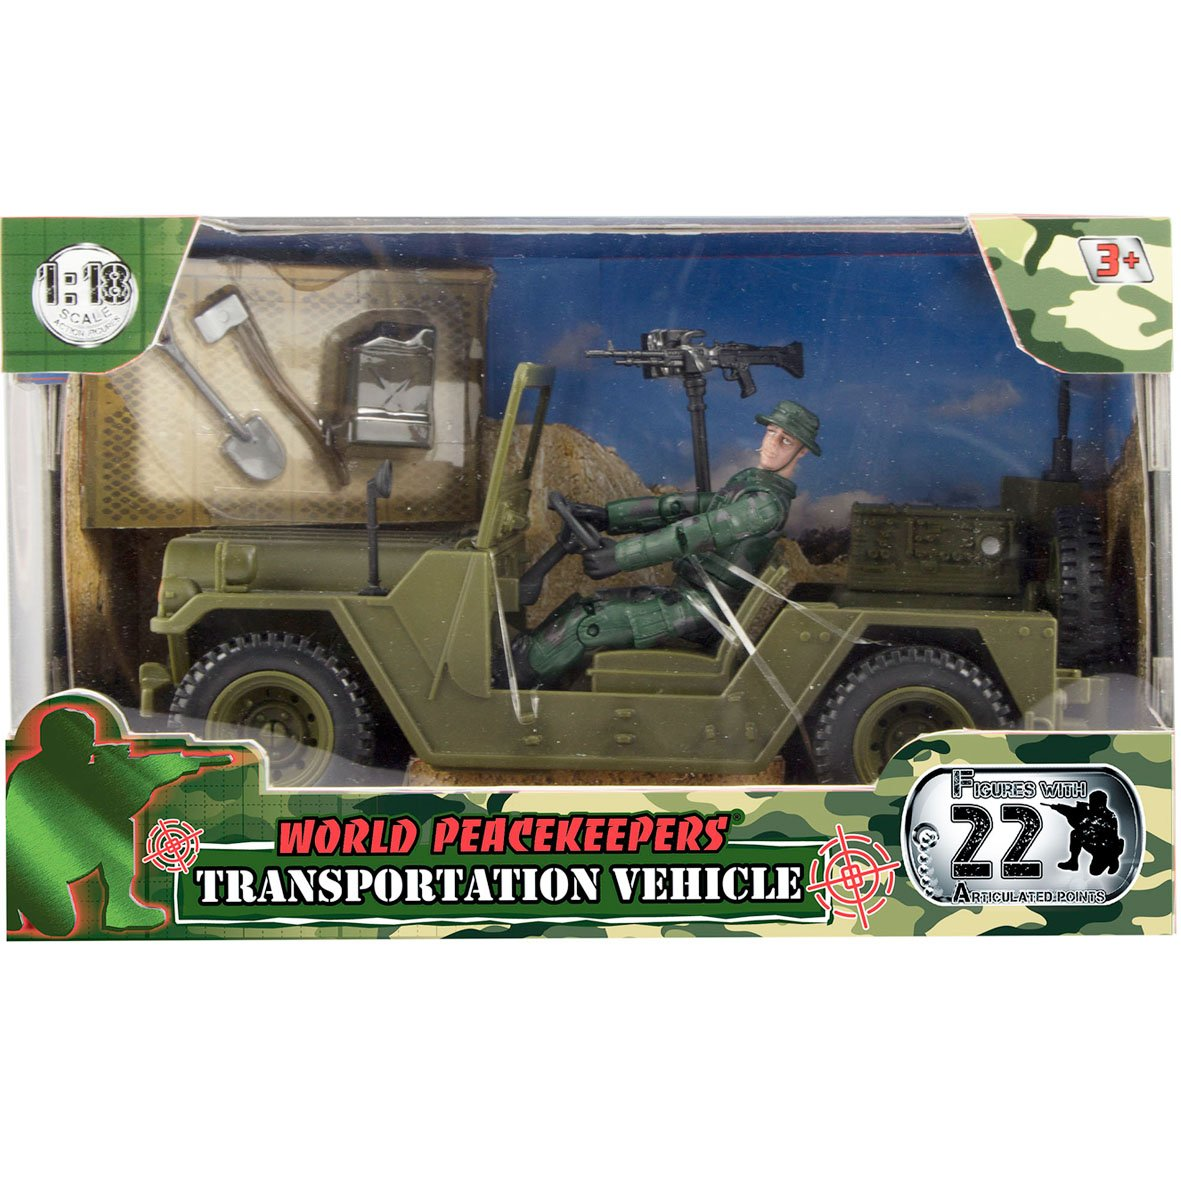 Military Vehicle Toys For Boys : World peacekeeper toys wow